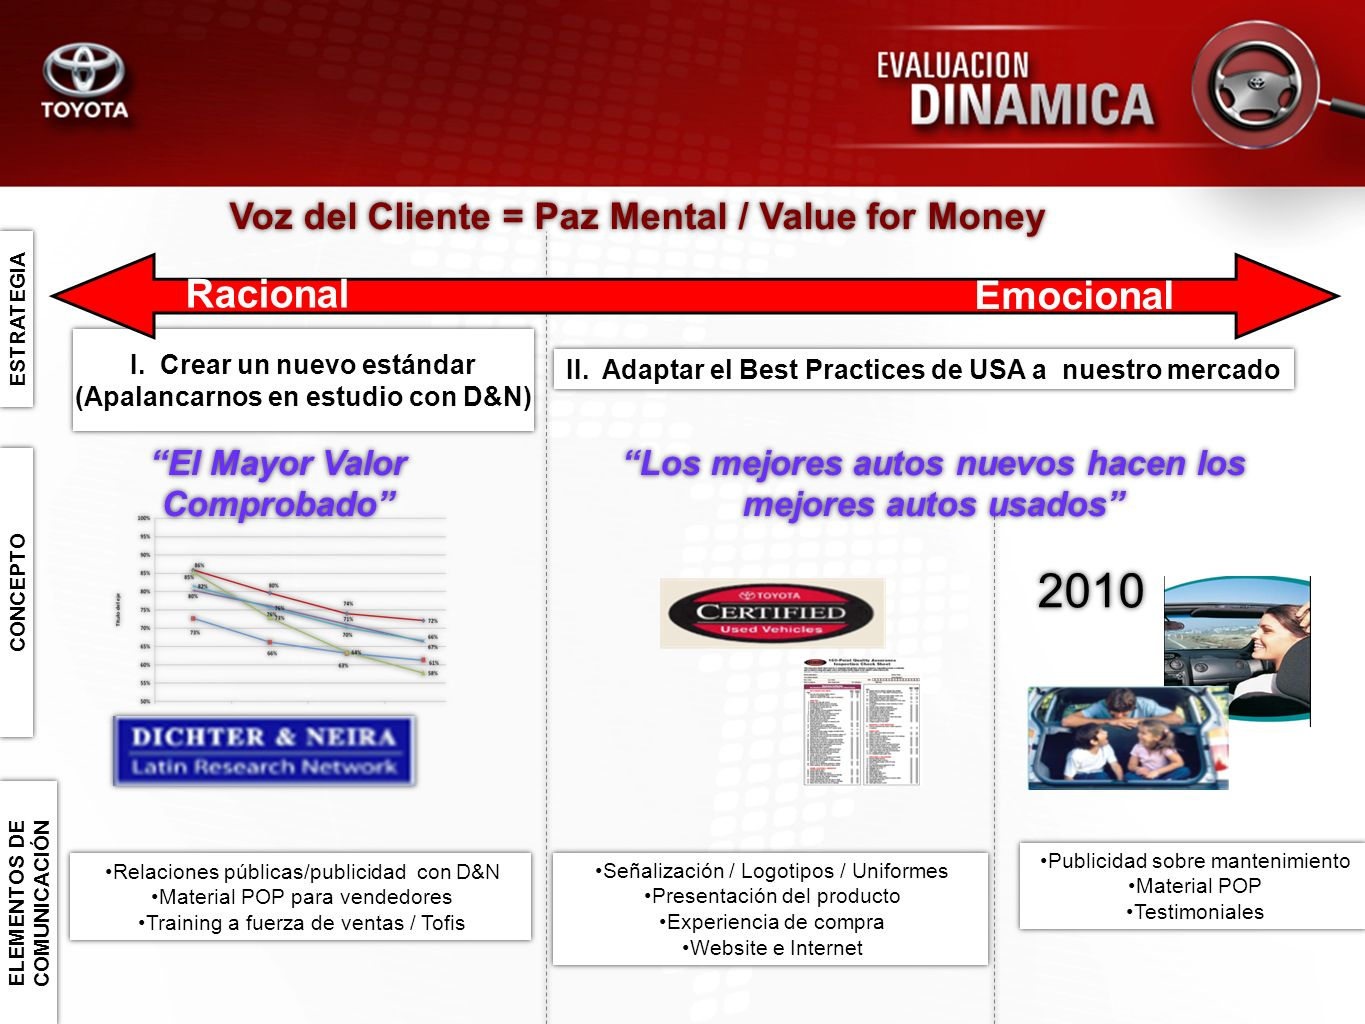 2010 Racional Emocional Voz del Cliente = Paz Mental / Value for Money